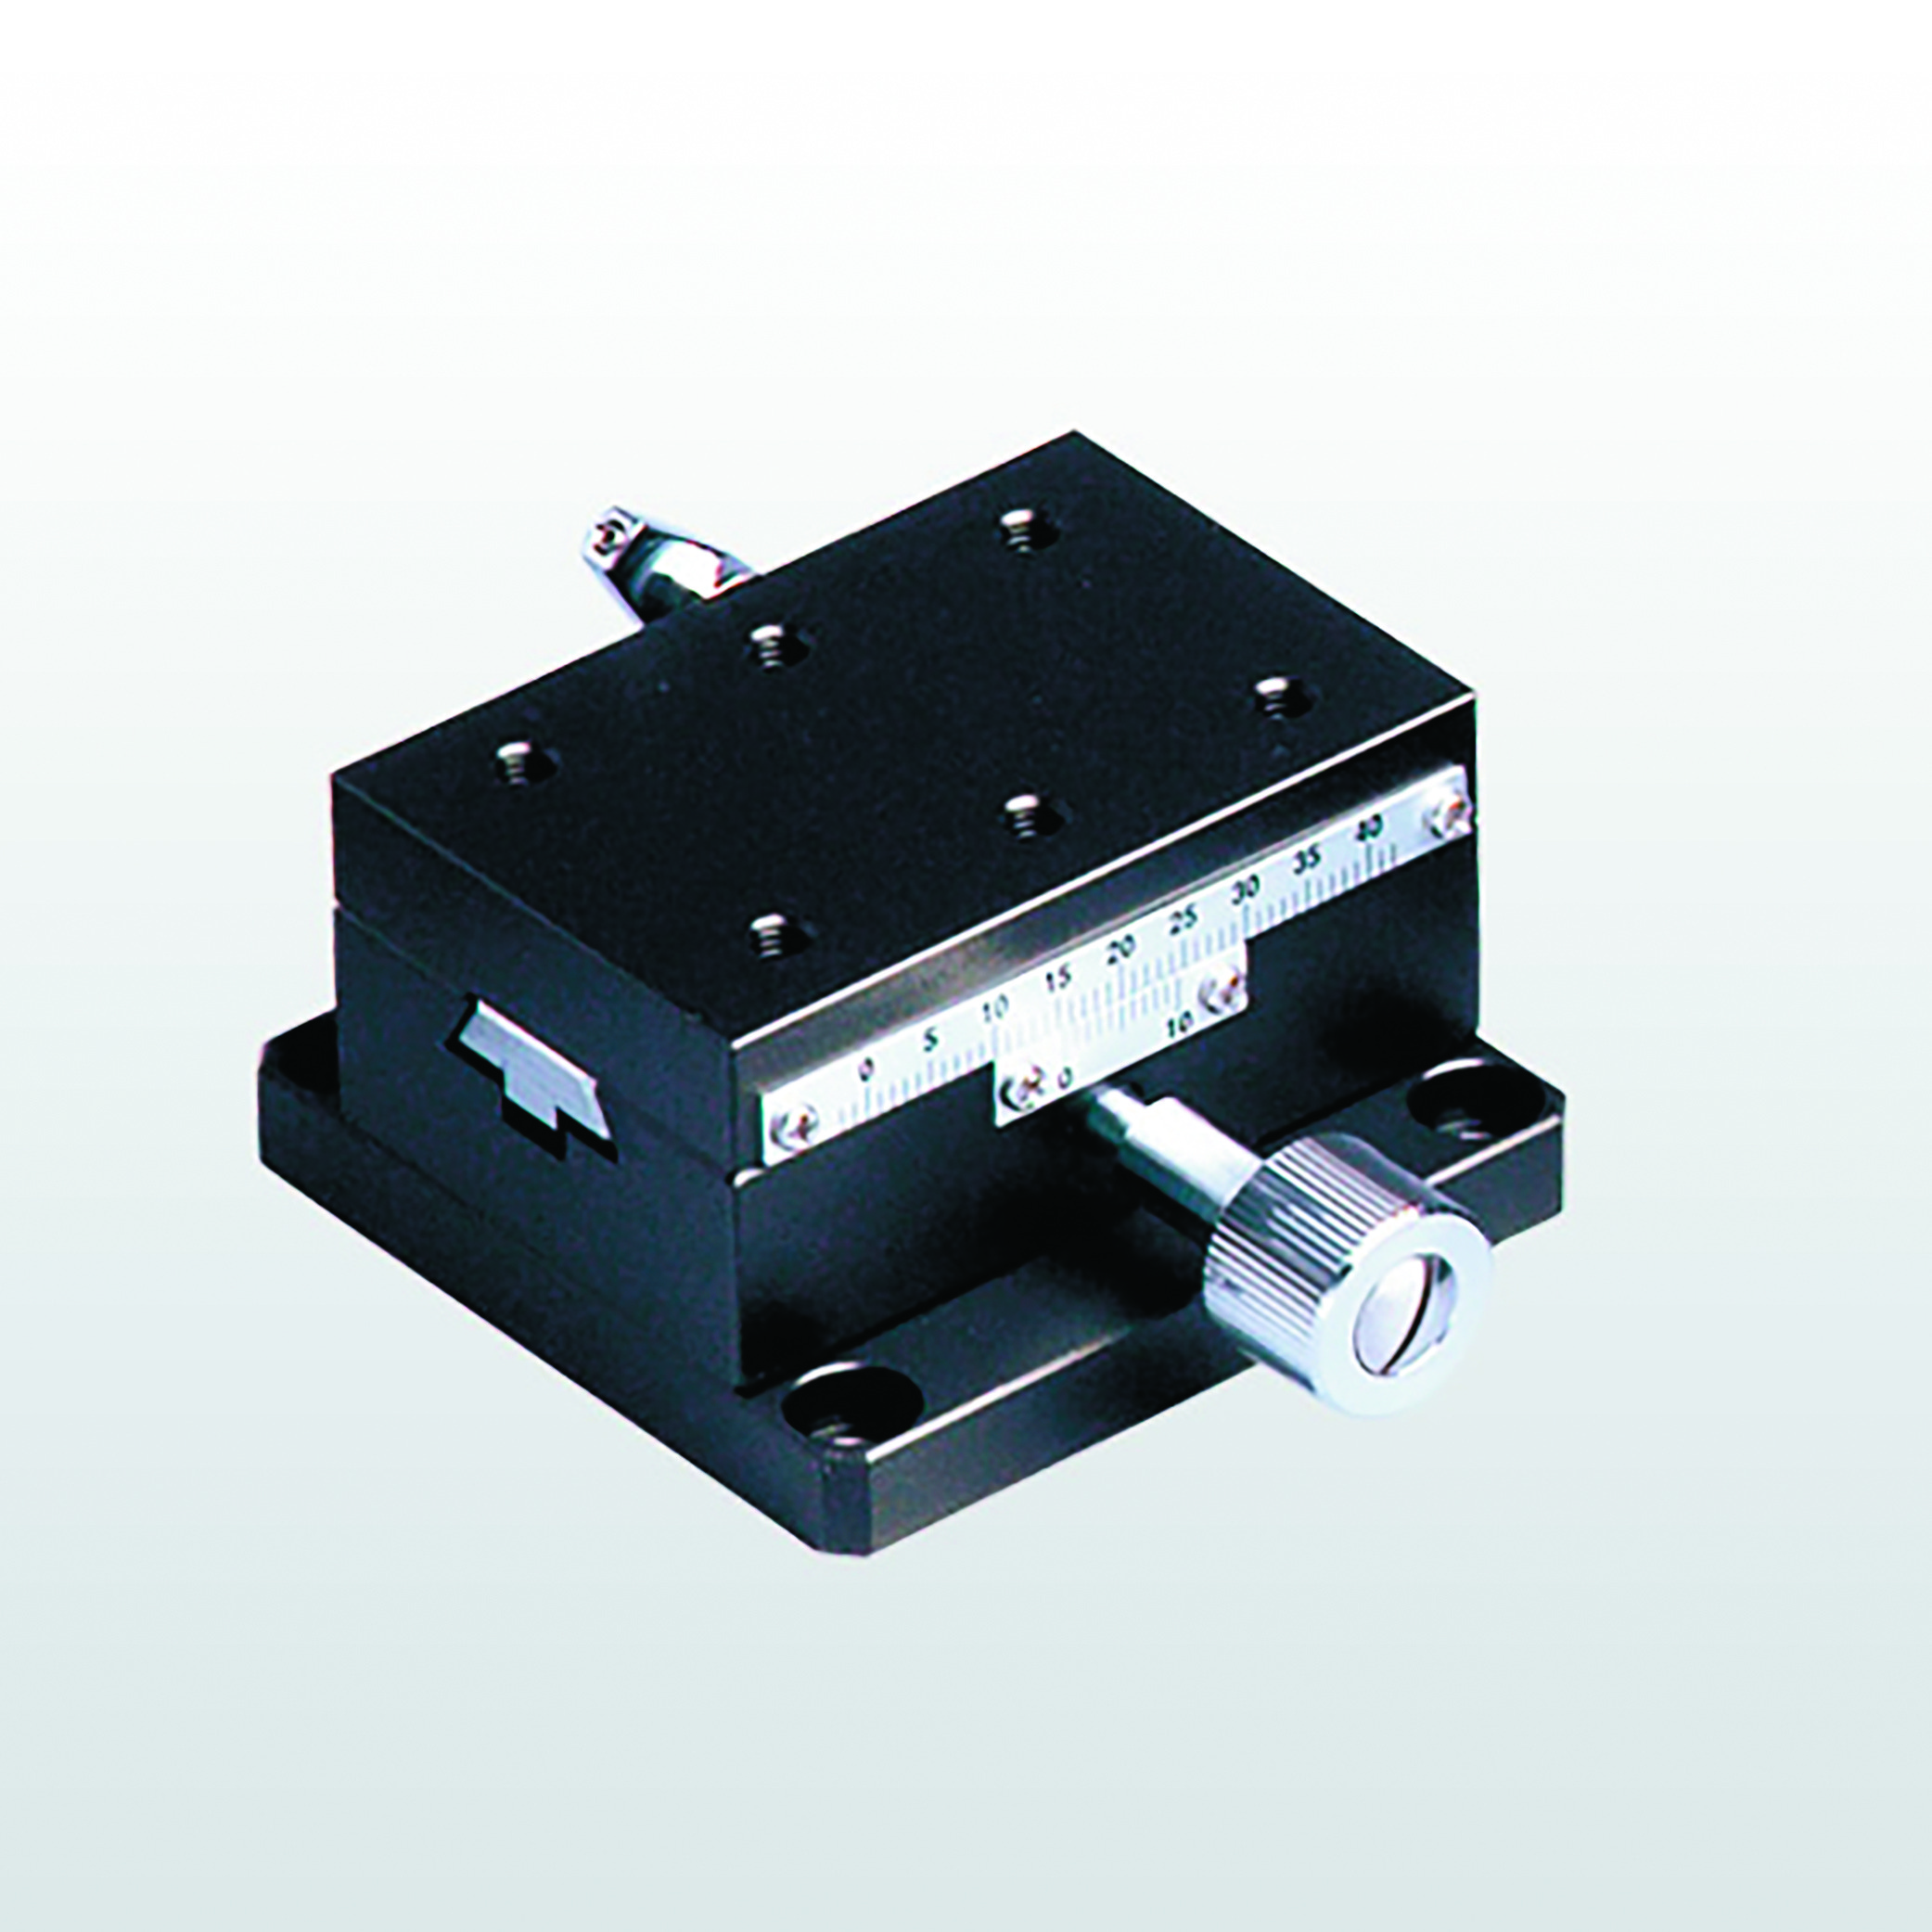 MIRUC optical microscope